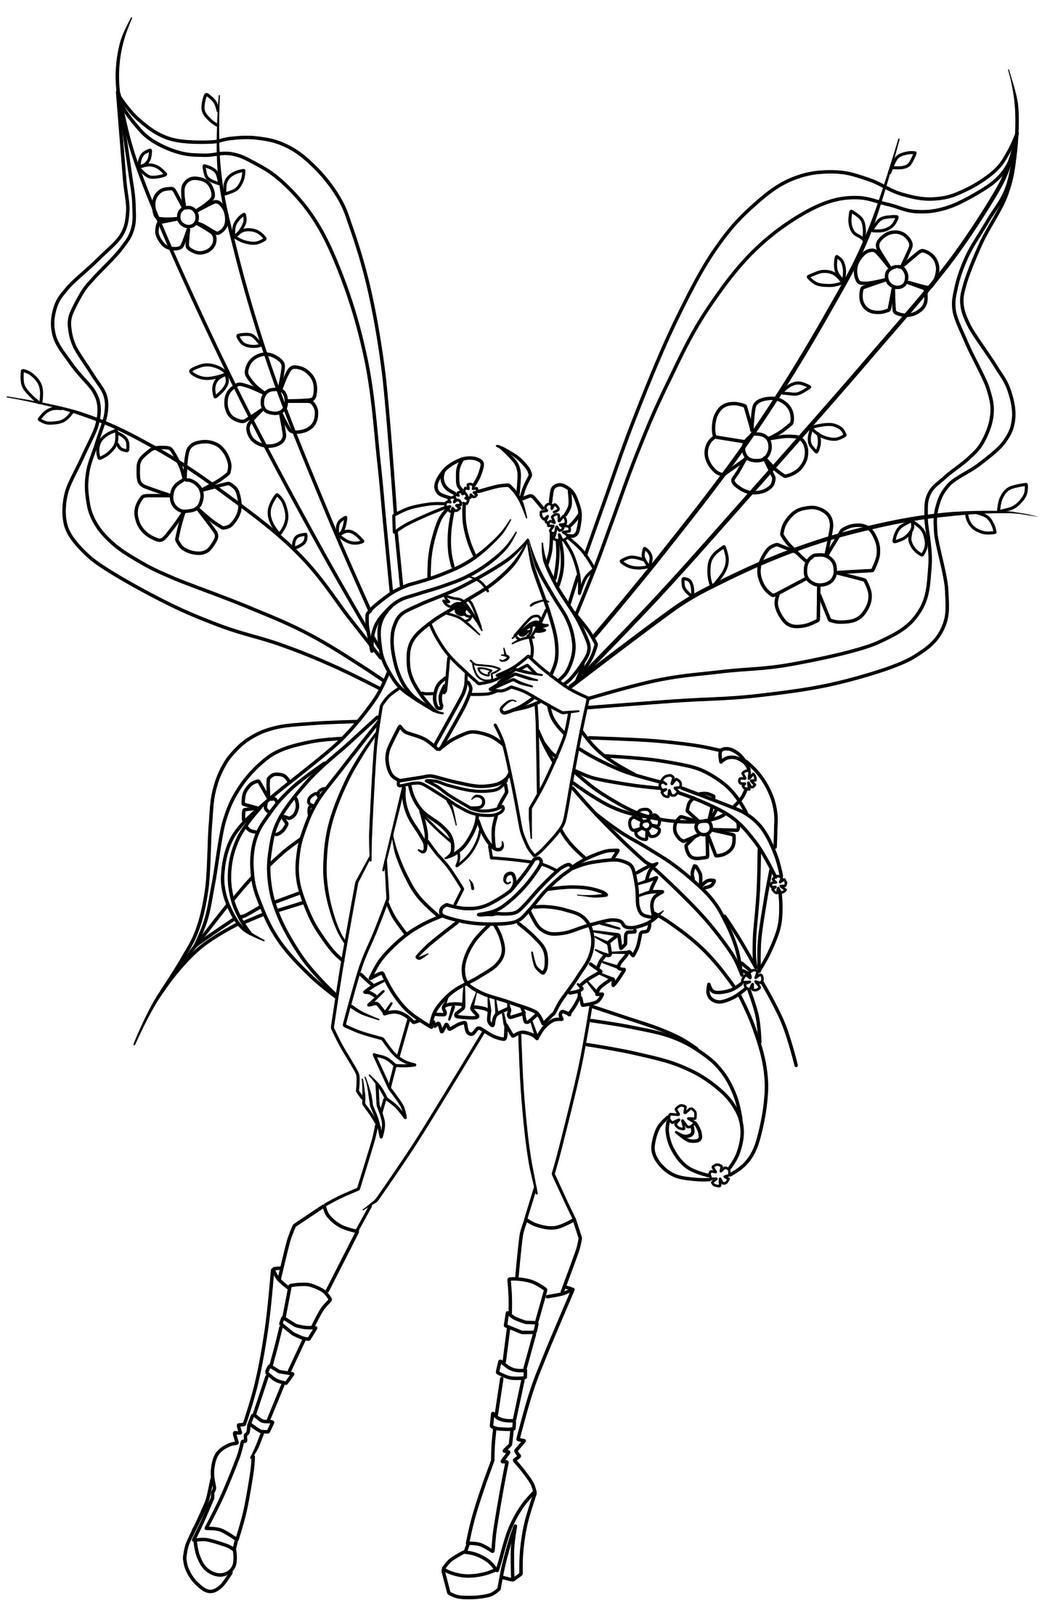 winx coloring page winx princess coloring pages download and print for free winx page coloring